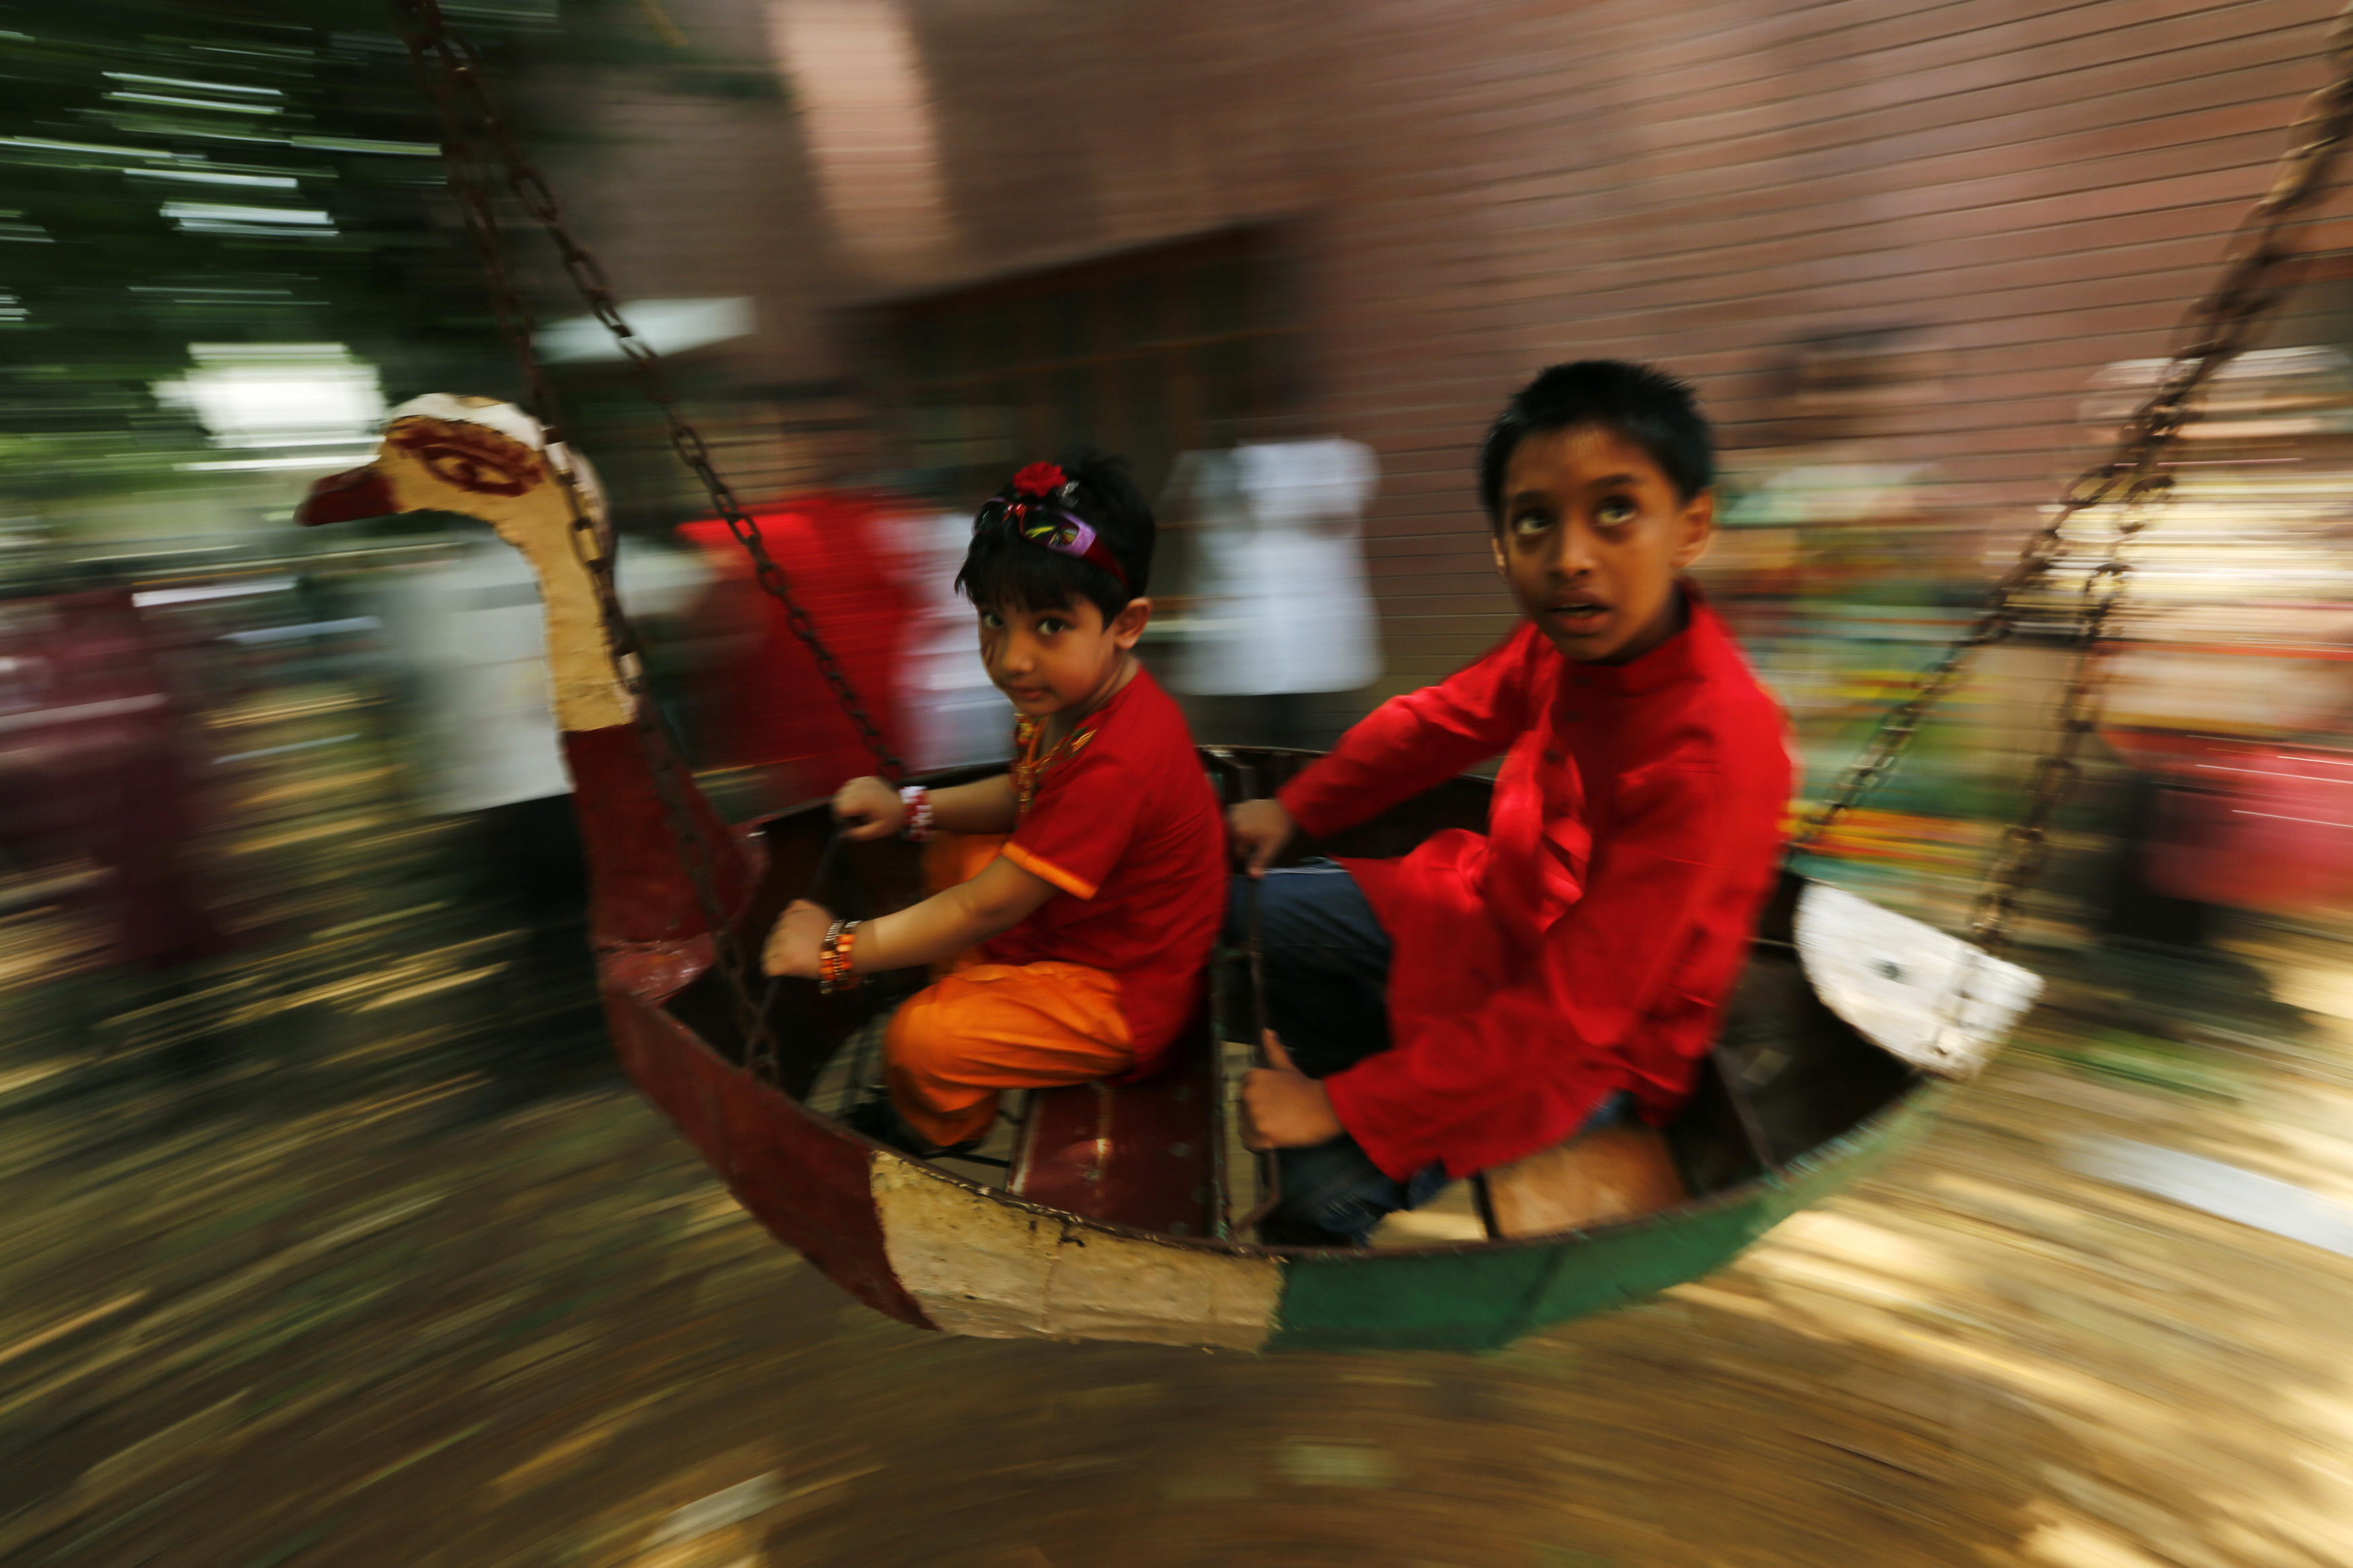 Children at play during the Mongol Shobhajatra in Dhaka. Photo credit: REUTERS/Andrew Biraj